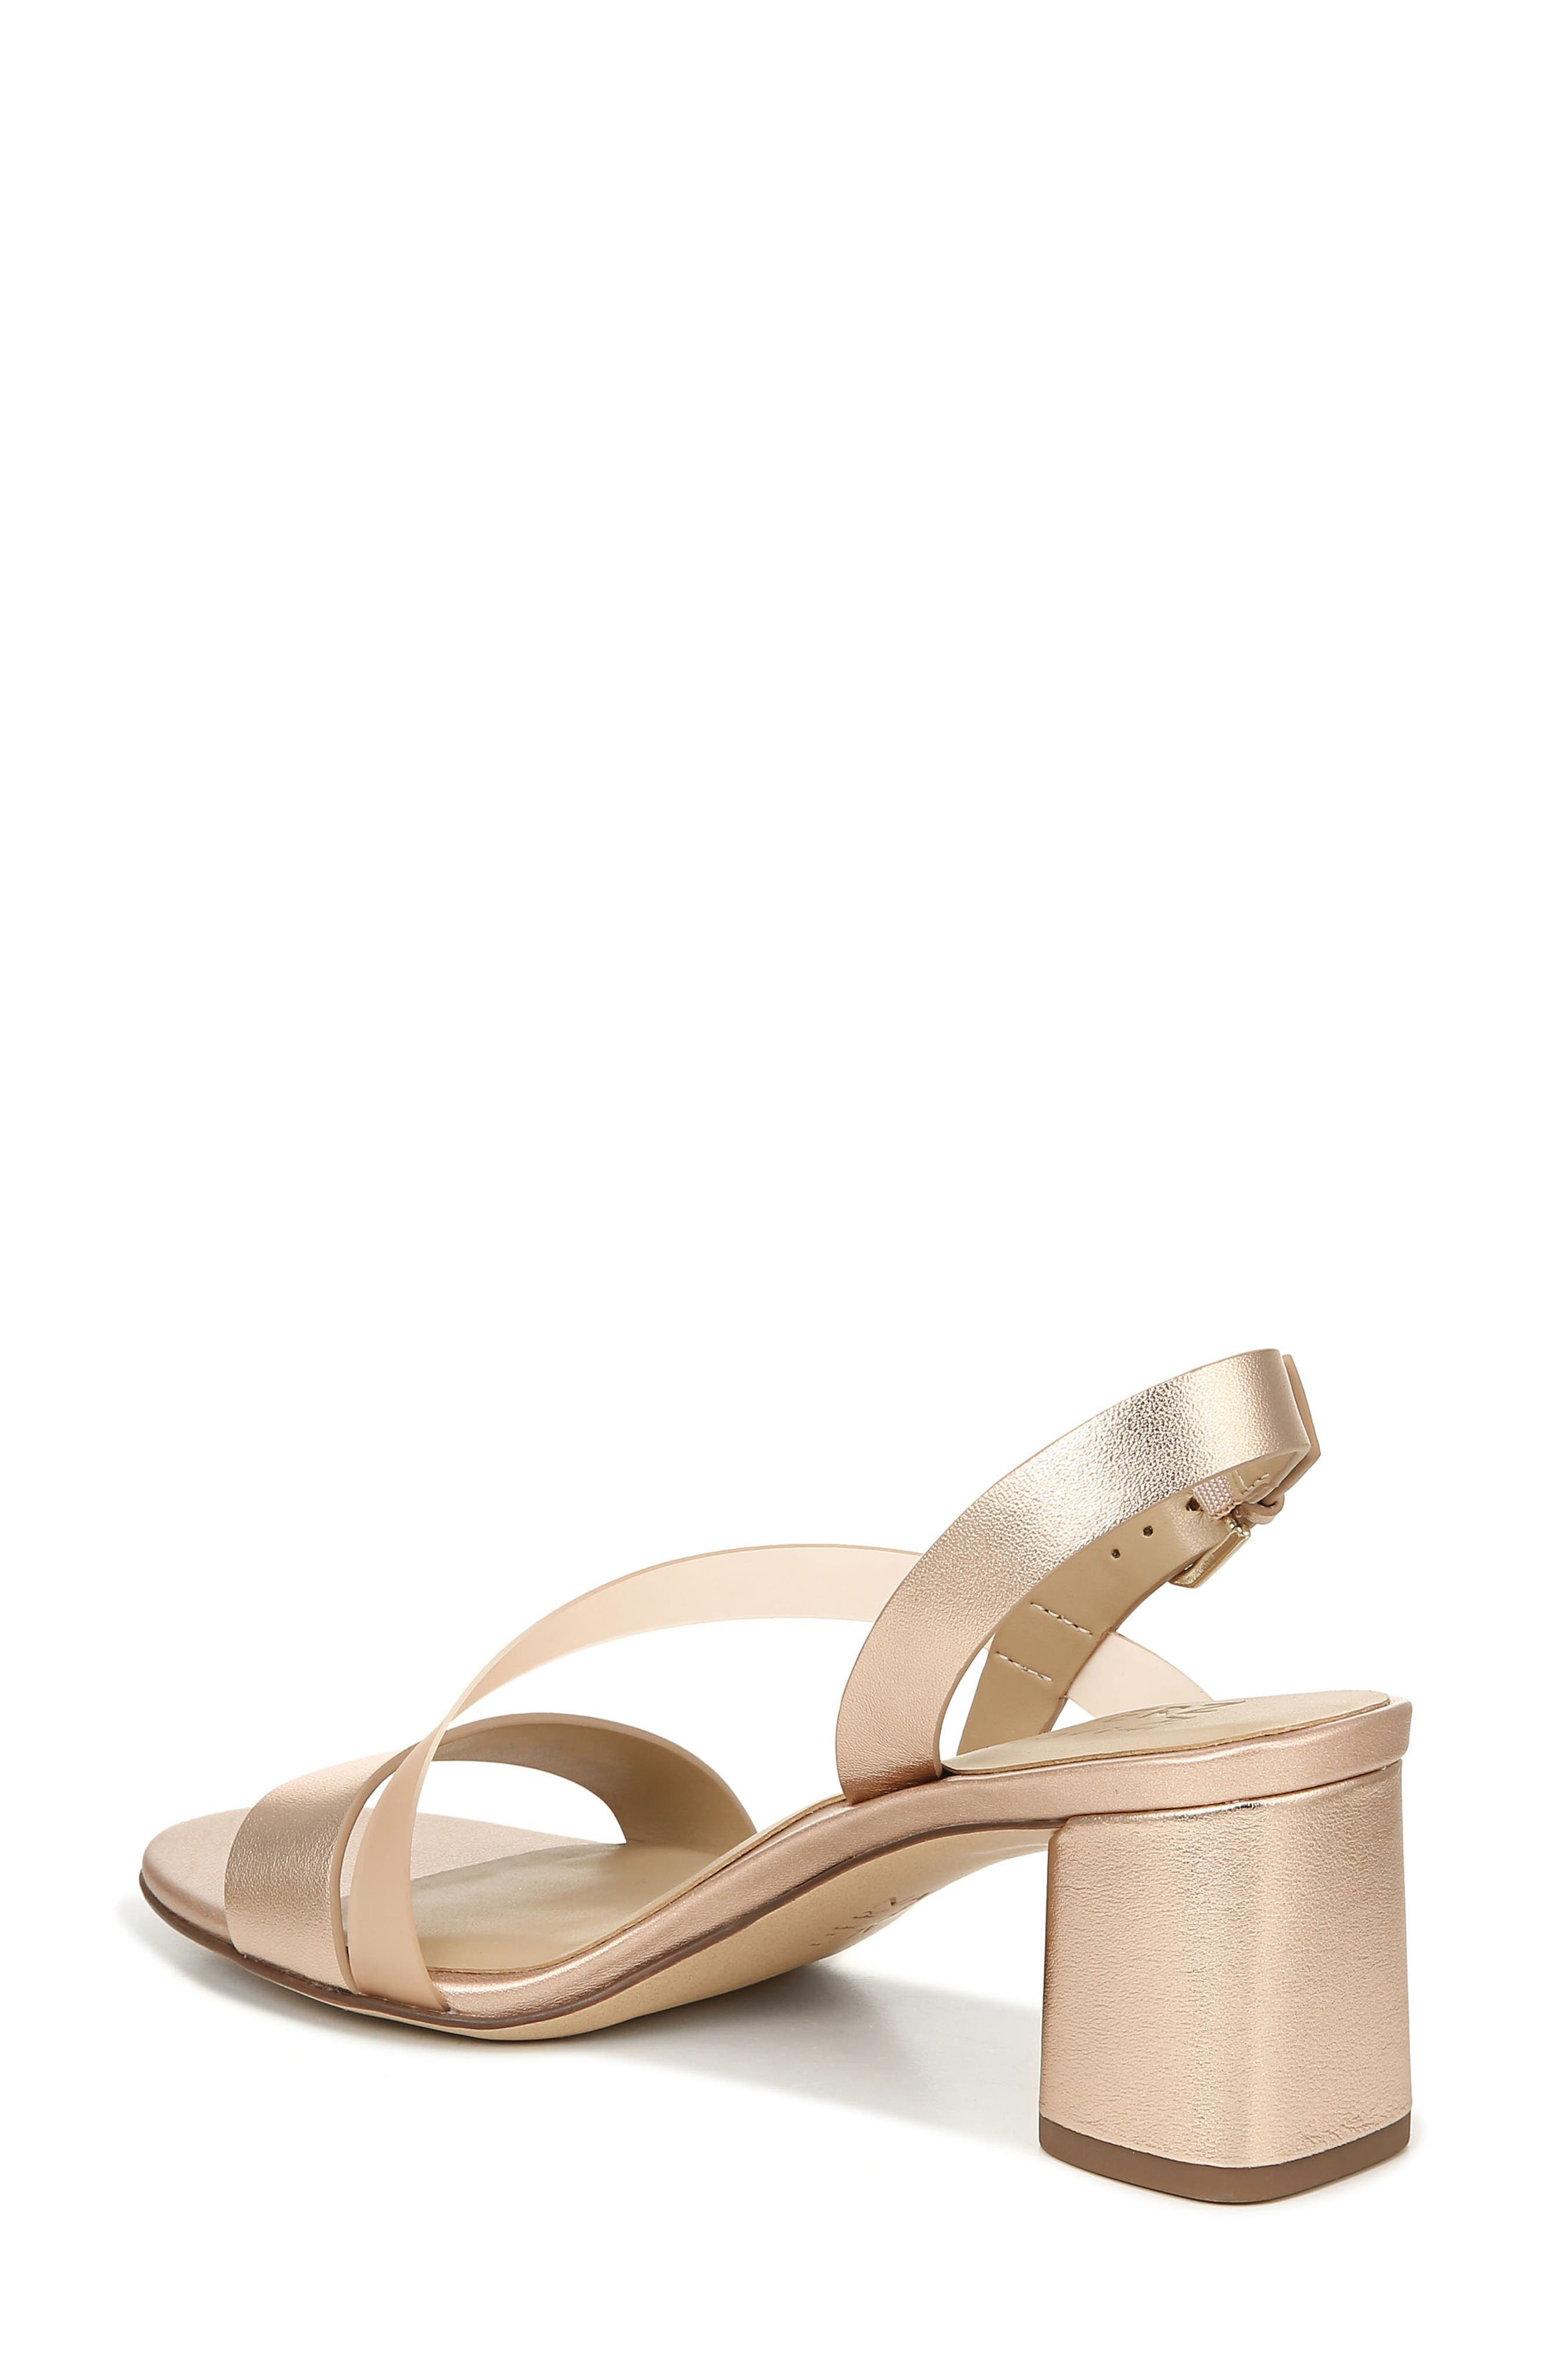 NATURALIZER, Arianna Block Heel Sandal, Alternate thumbnail 2, color, ROSE GOLD LEATHER